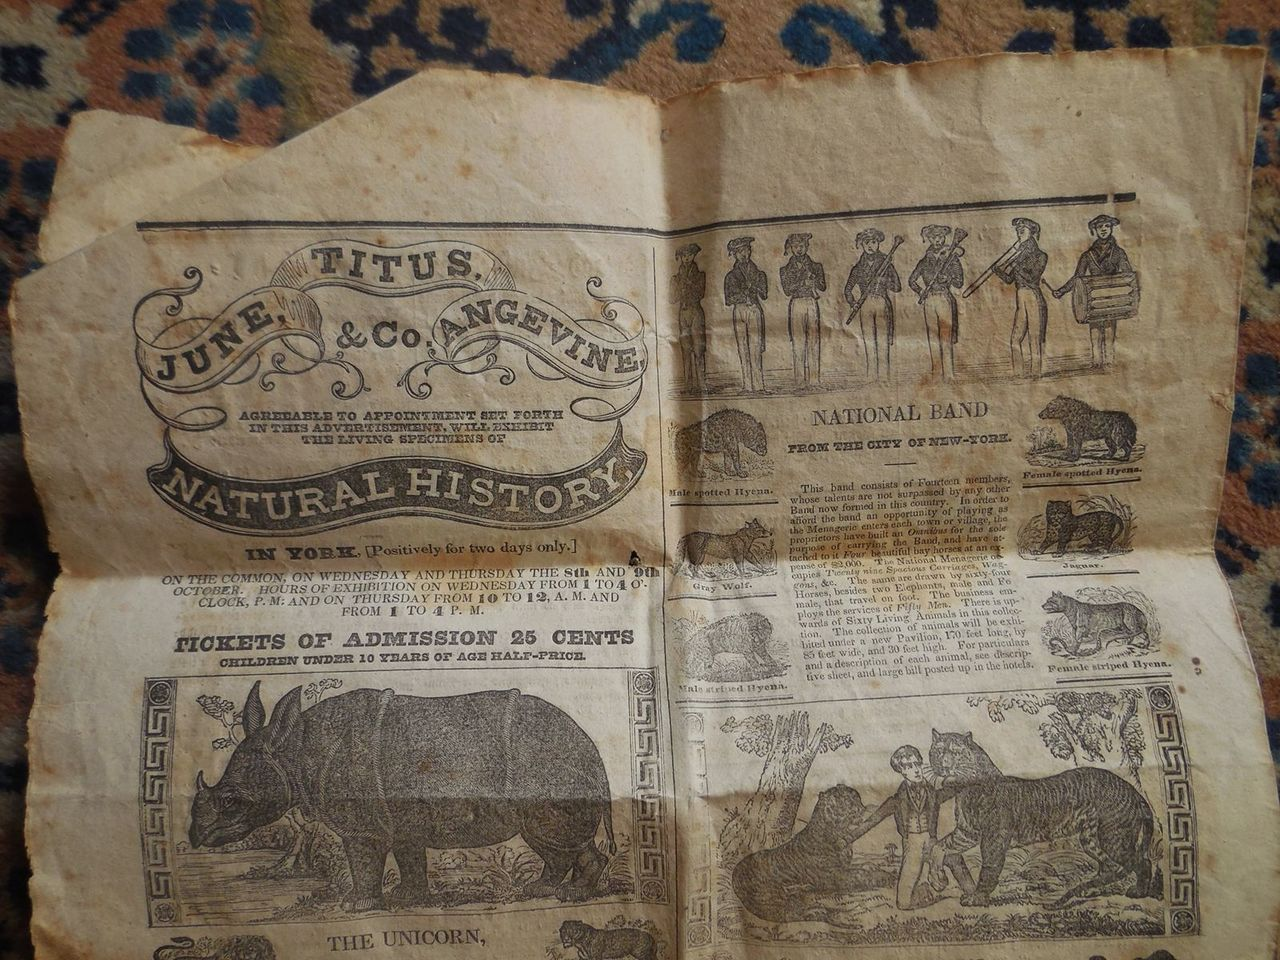 JUNE, TITUS ANGEVINE & CO, Circus Ad -1834 Flatfoots Menagerie York, PA